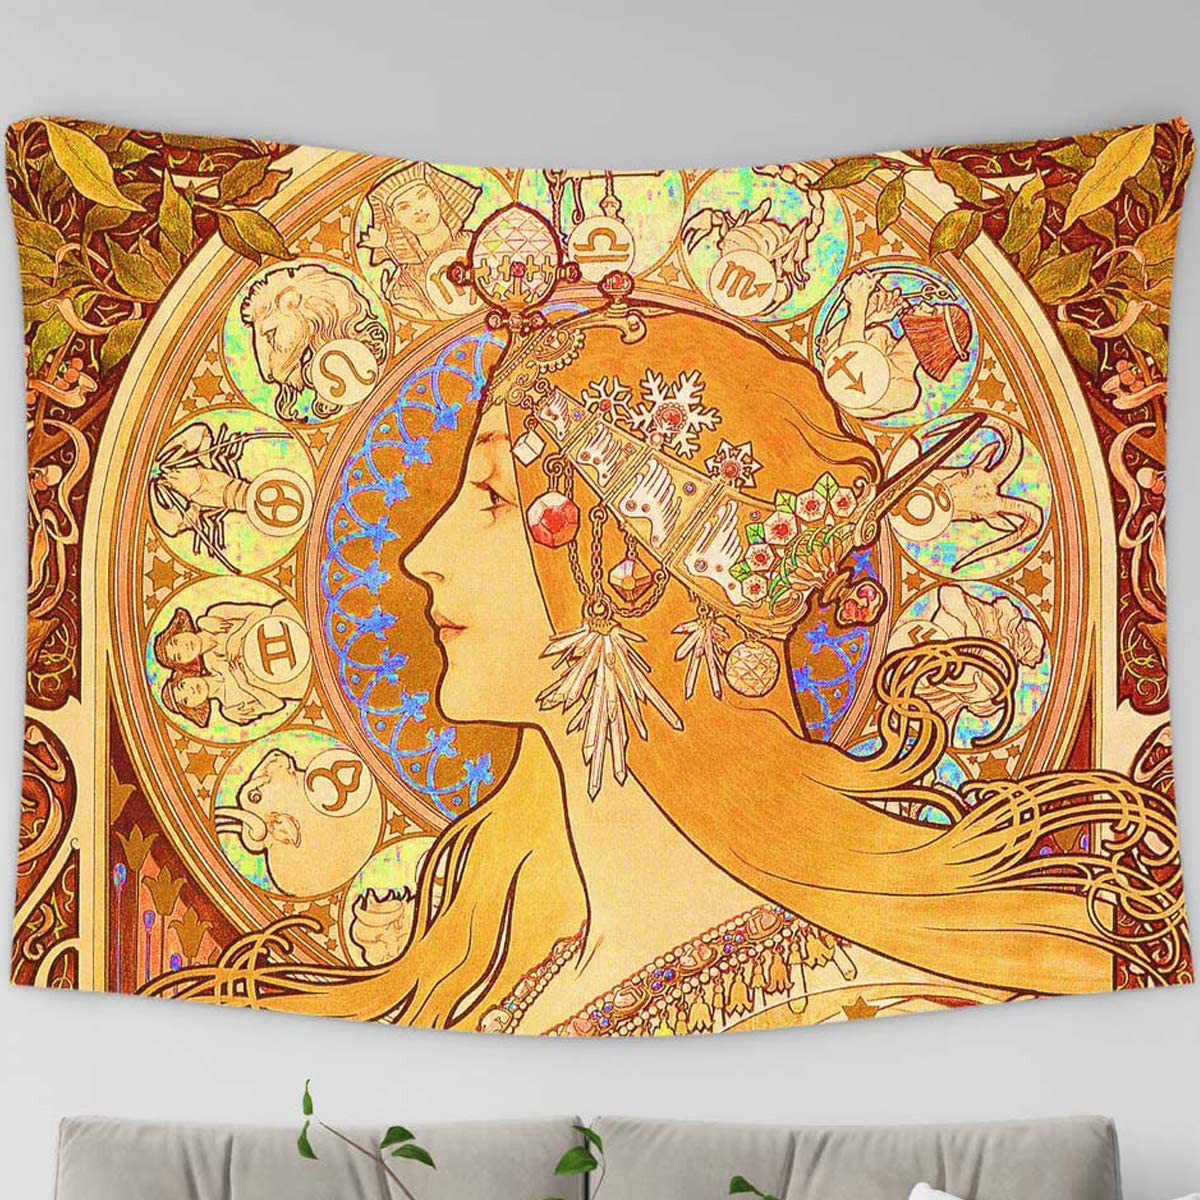 Loussiesd Mucha Tarot Tapestries, Tarot Queen Printed Wall Hanging Tapestries, Vintage Tapestry, Tablecloth,XLarge 70.9 x 92.5 Inches